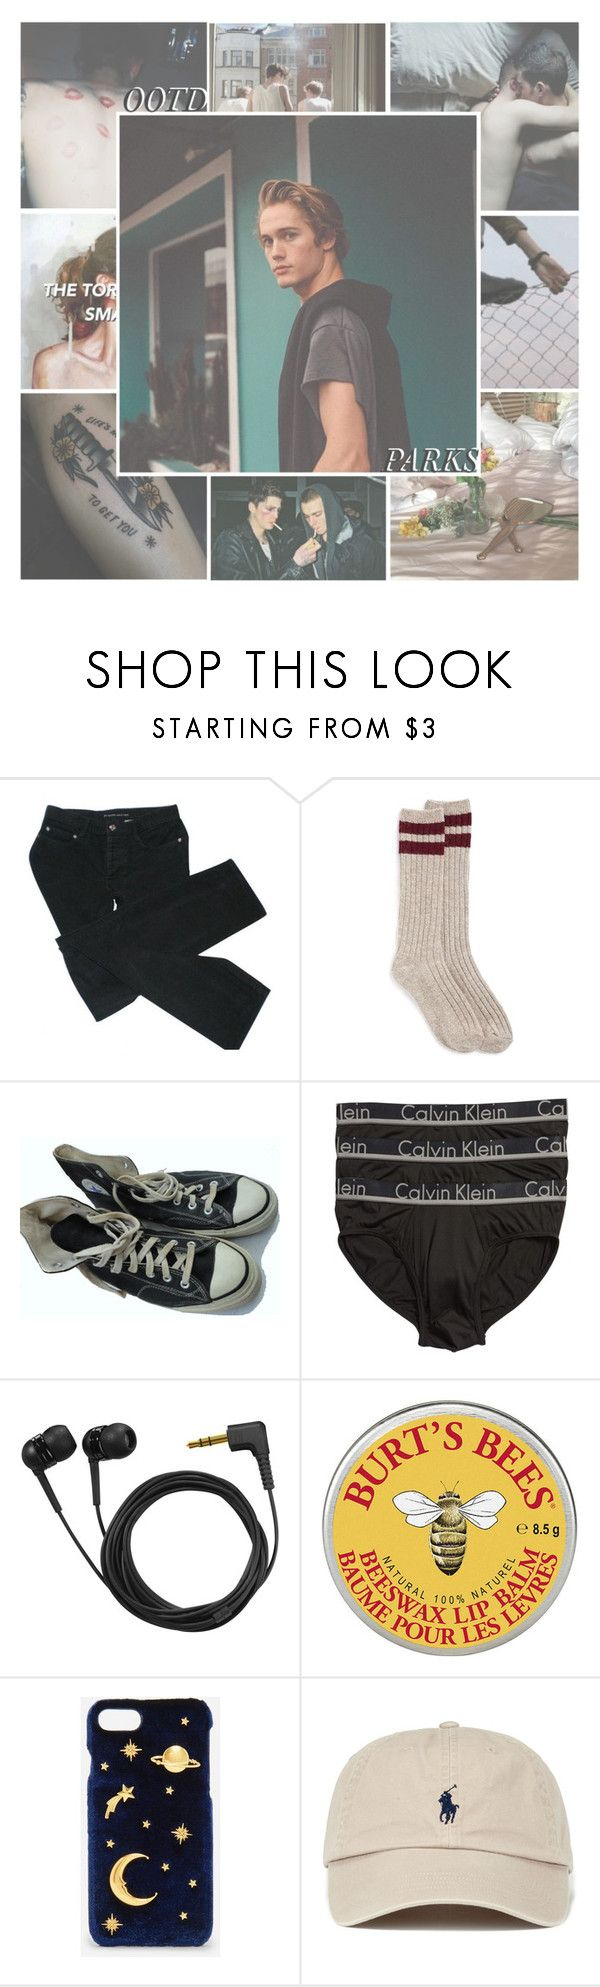 """"""" let me take care of it, babe, close your eyes, i'll sing your favorite song """" by acesbabe ❤ liked on Polyvore featuring GET LOST, Marc by Marc Jacobs, Converse, Calvin Klein, Sennheiser and CHARLES & KEITH"""